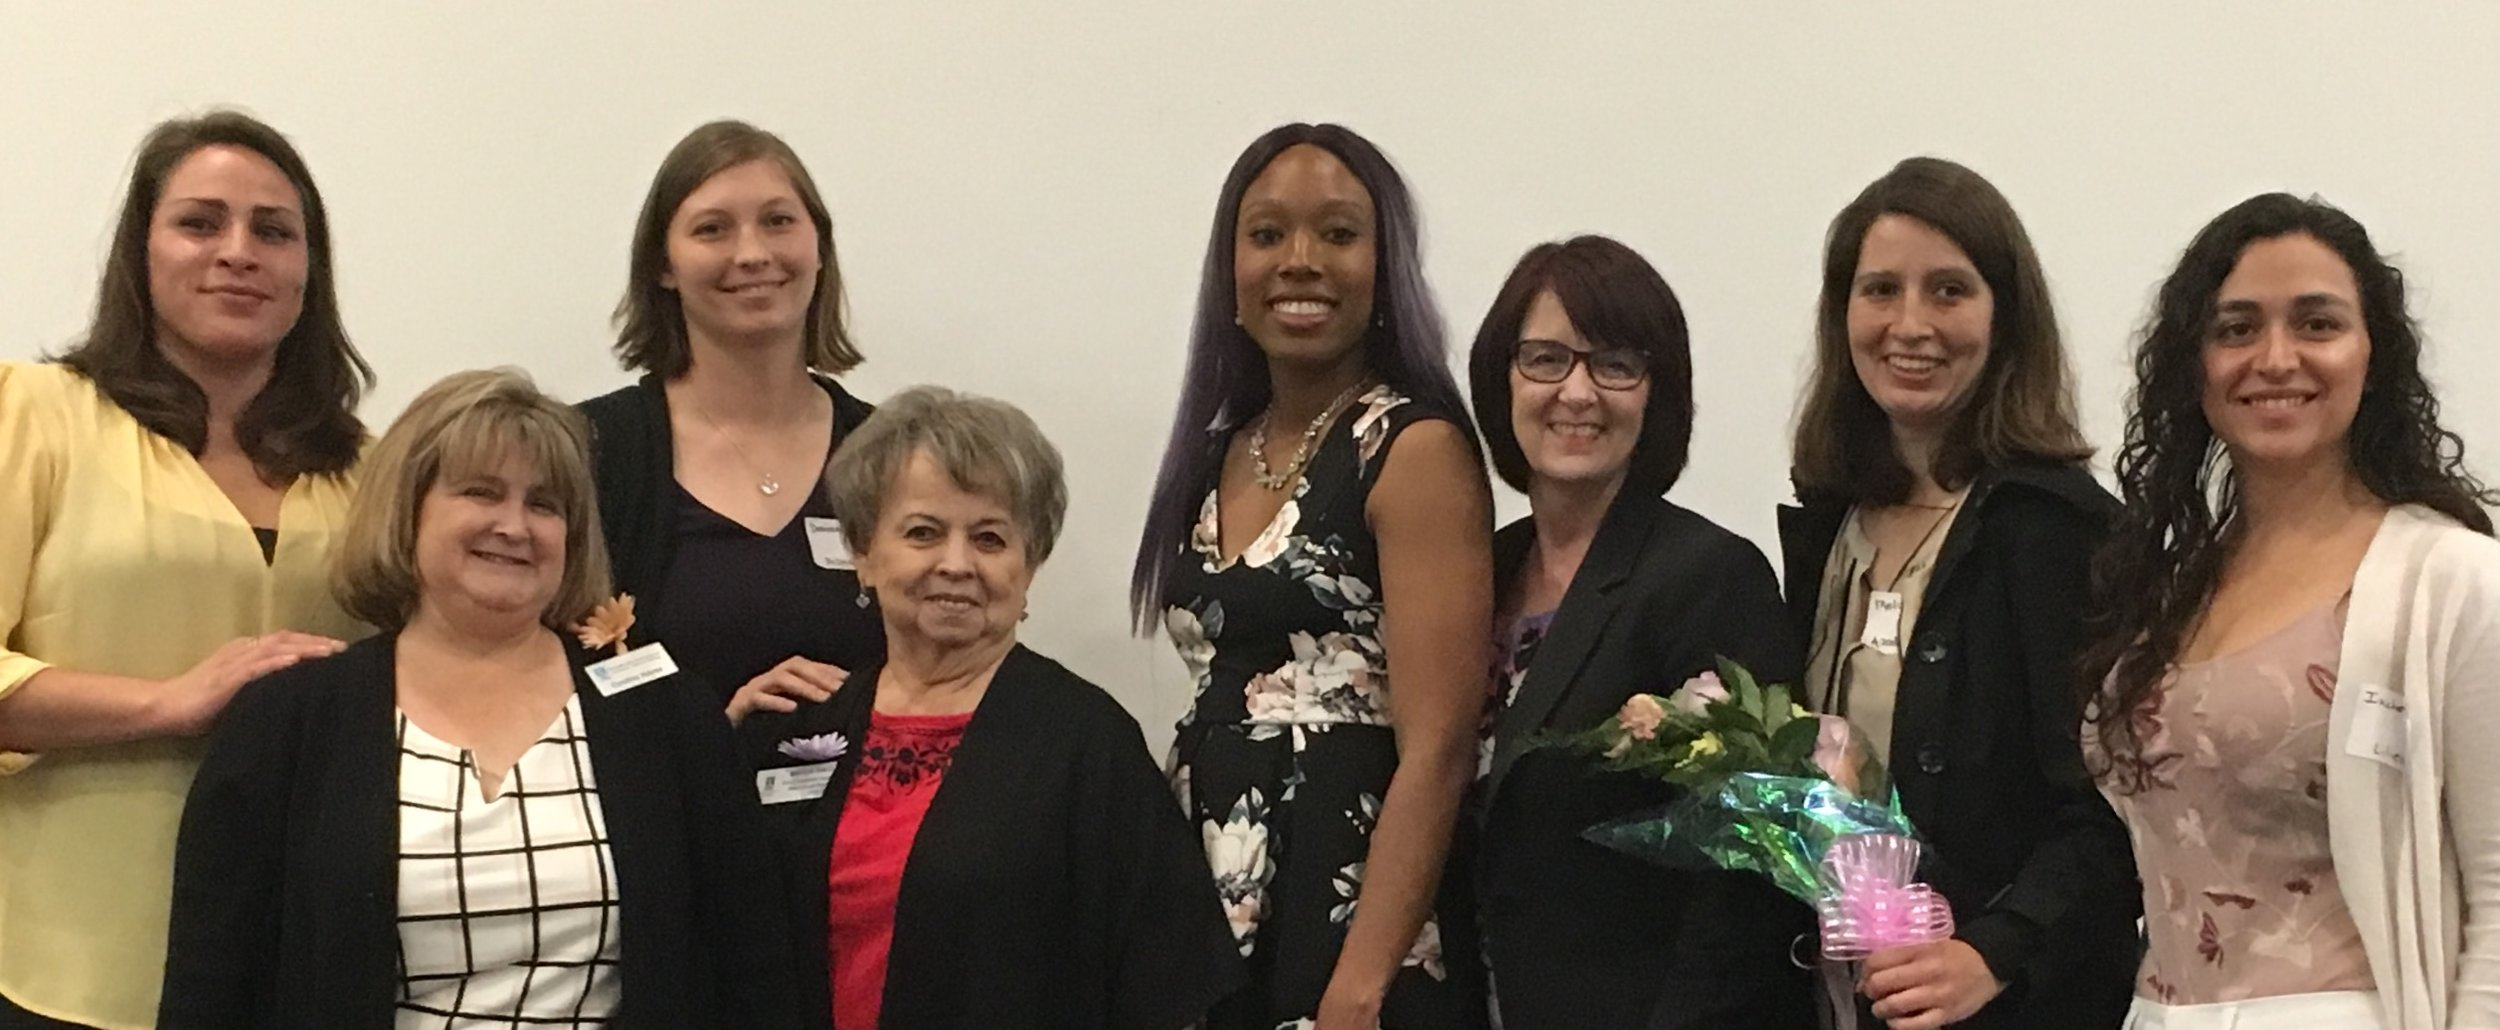 L to R: Ashley Ross, Soroptimist President Cynthia Hayes (front), Desiree Montoya, Soroptimist Live Your Dream Chair Marilyn Smith (front) Shaunise Price, Soroptimist Desert Coast Region Governor Laurel Lanham, Melissa Hamby, Deborah Ixchel Perez